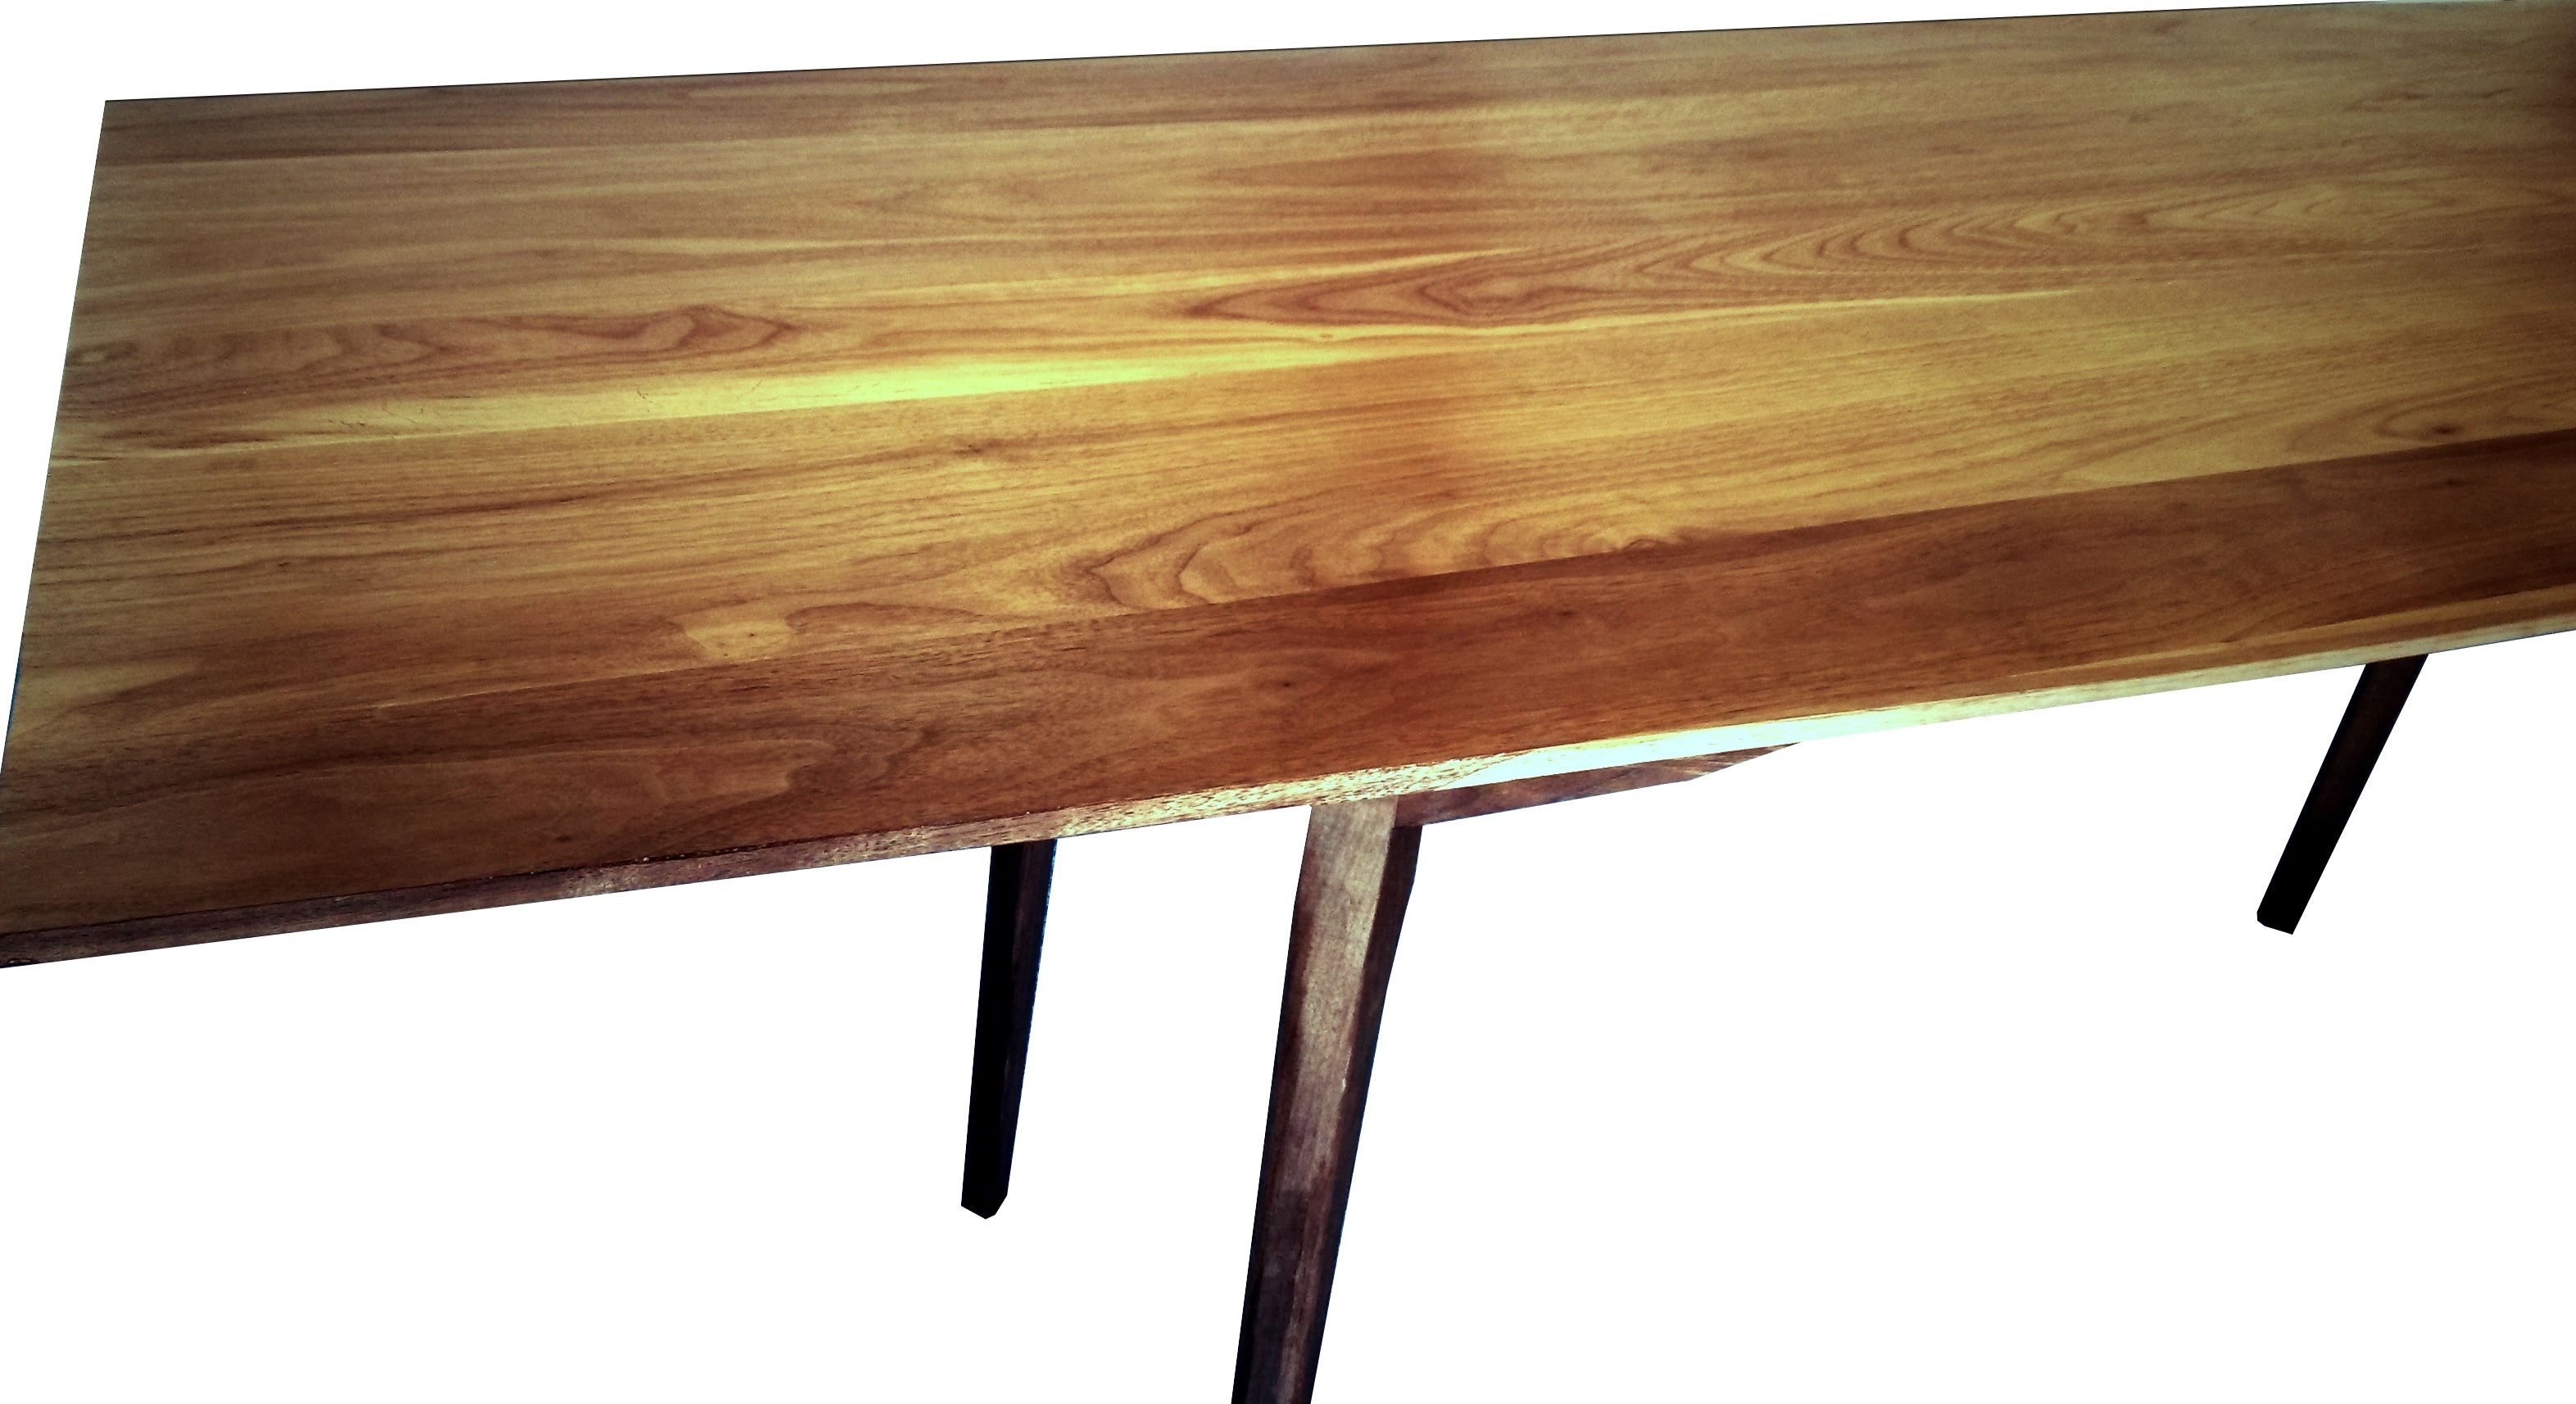 Buy A Hand Made Mid Century Styled Walnut Dining Kitchen Table Made To Order From Vermont